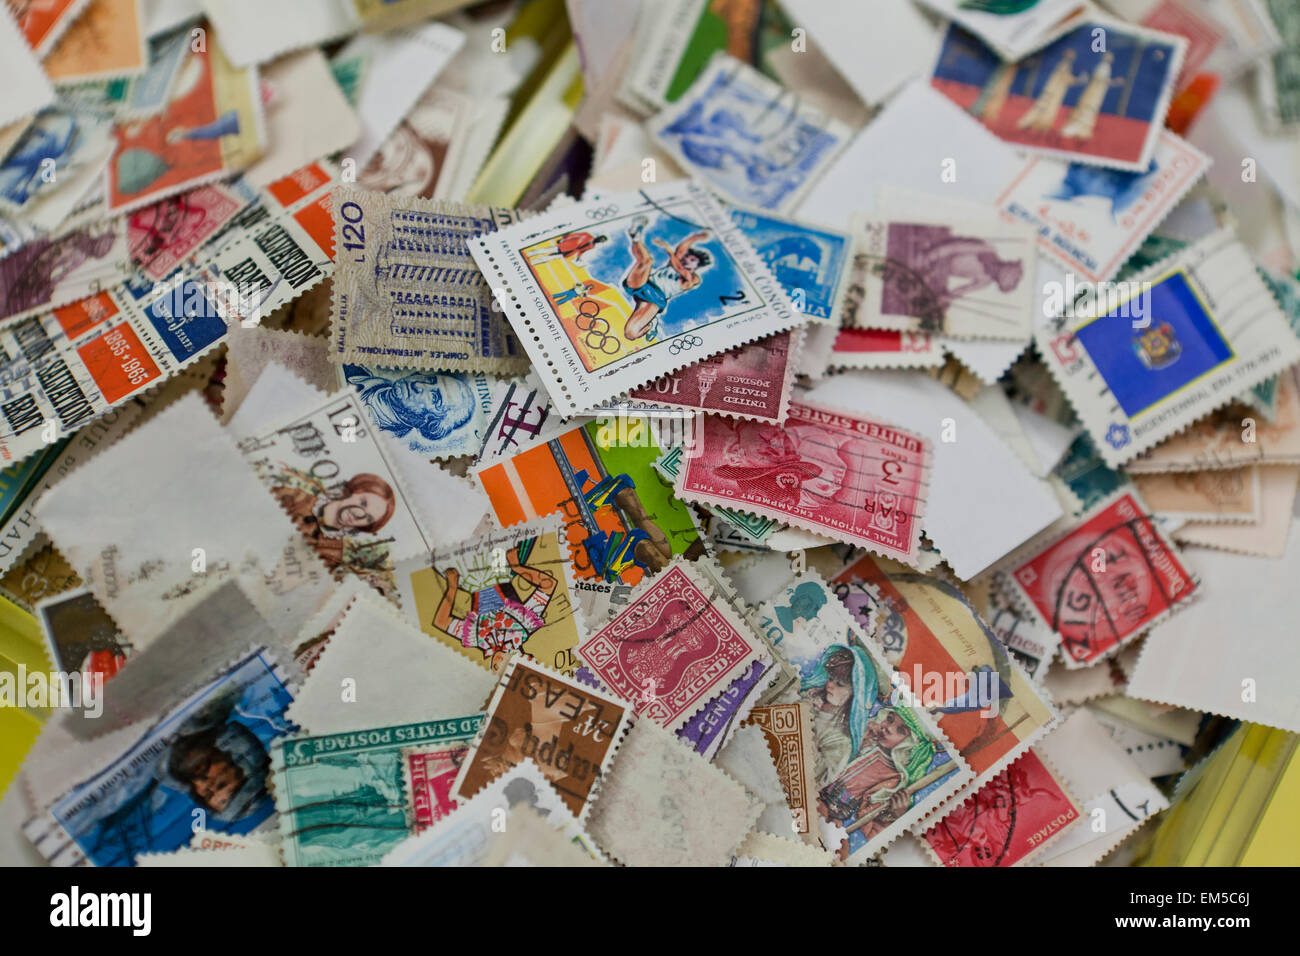 Used stamp collection in a pile - USA - Stock Image